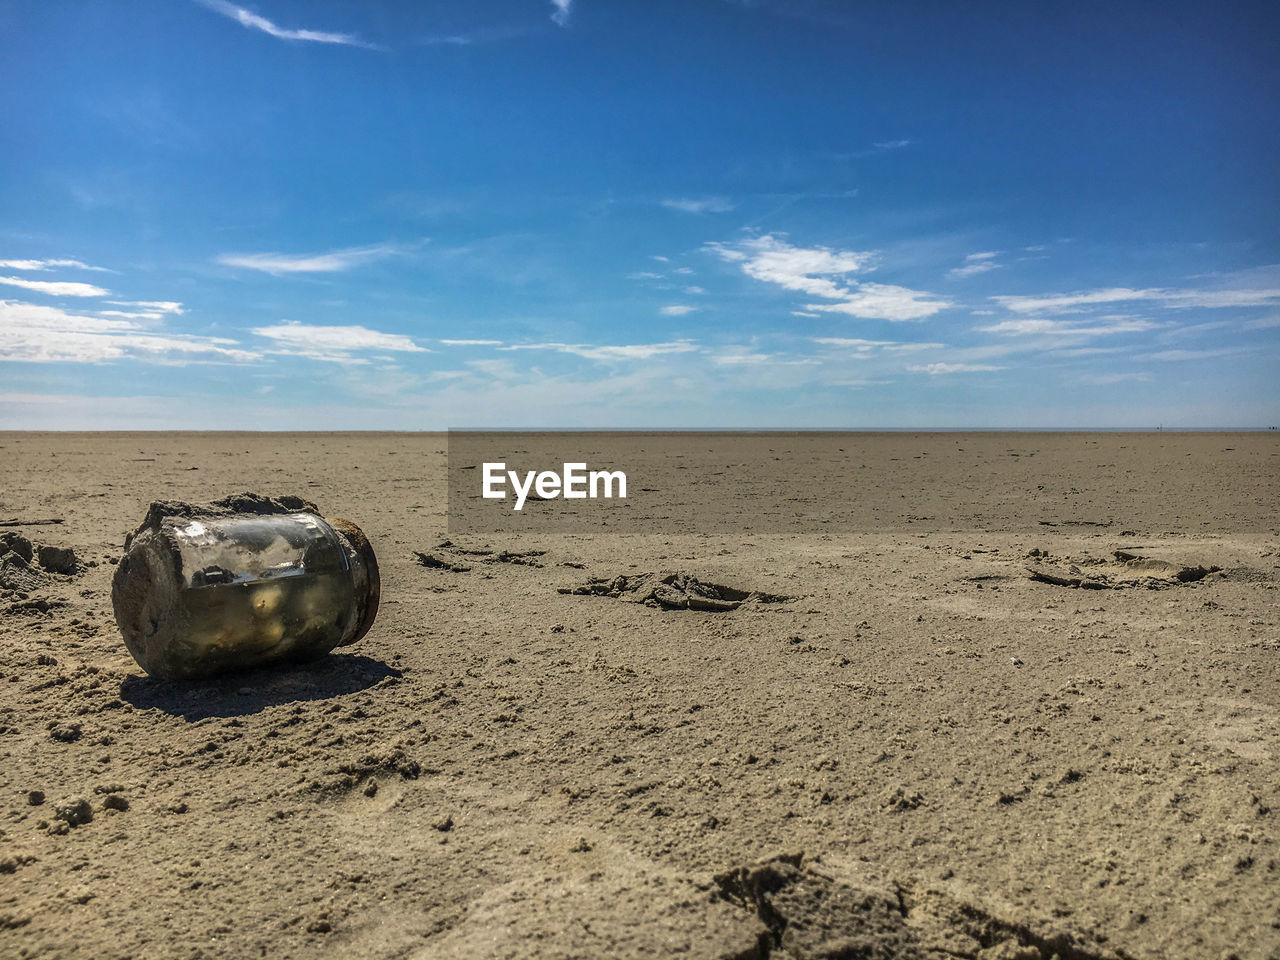 sky, sand, cloud - sky, nature, beach, day, scenics, no people, tranquility, beauty in nature, landscape, outdoors, animal themes